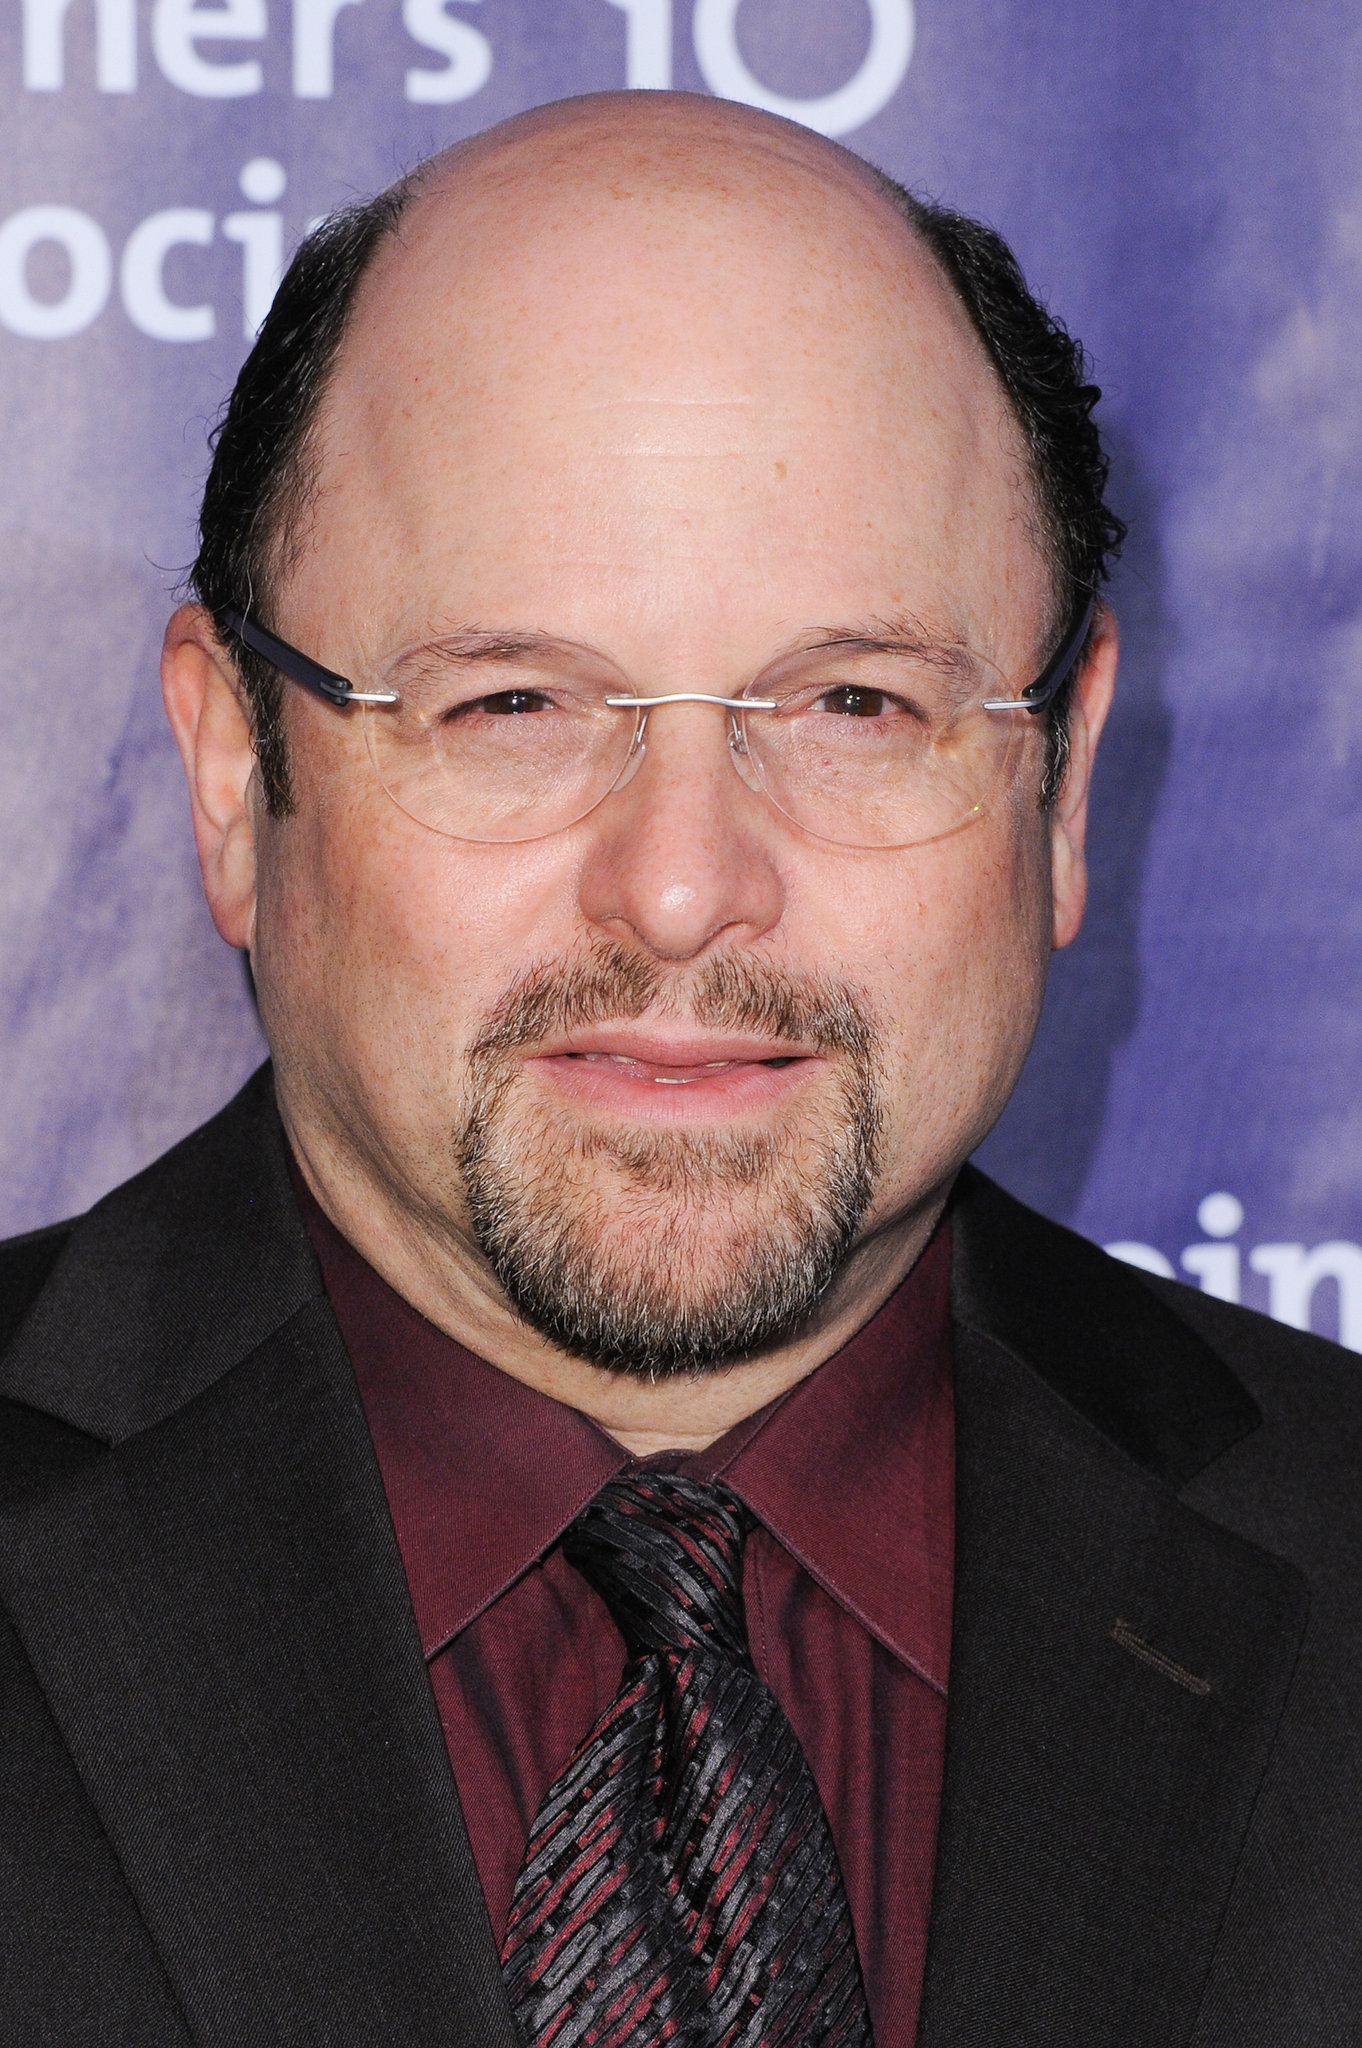 Old Jason Alexander with his bald head wearing red shirt and black coat